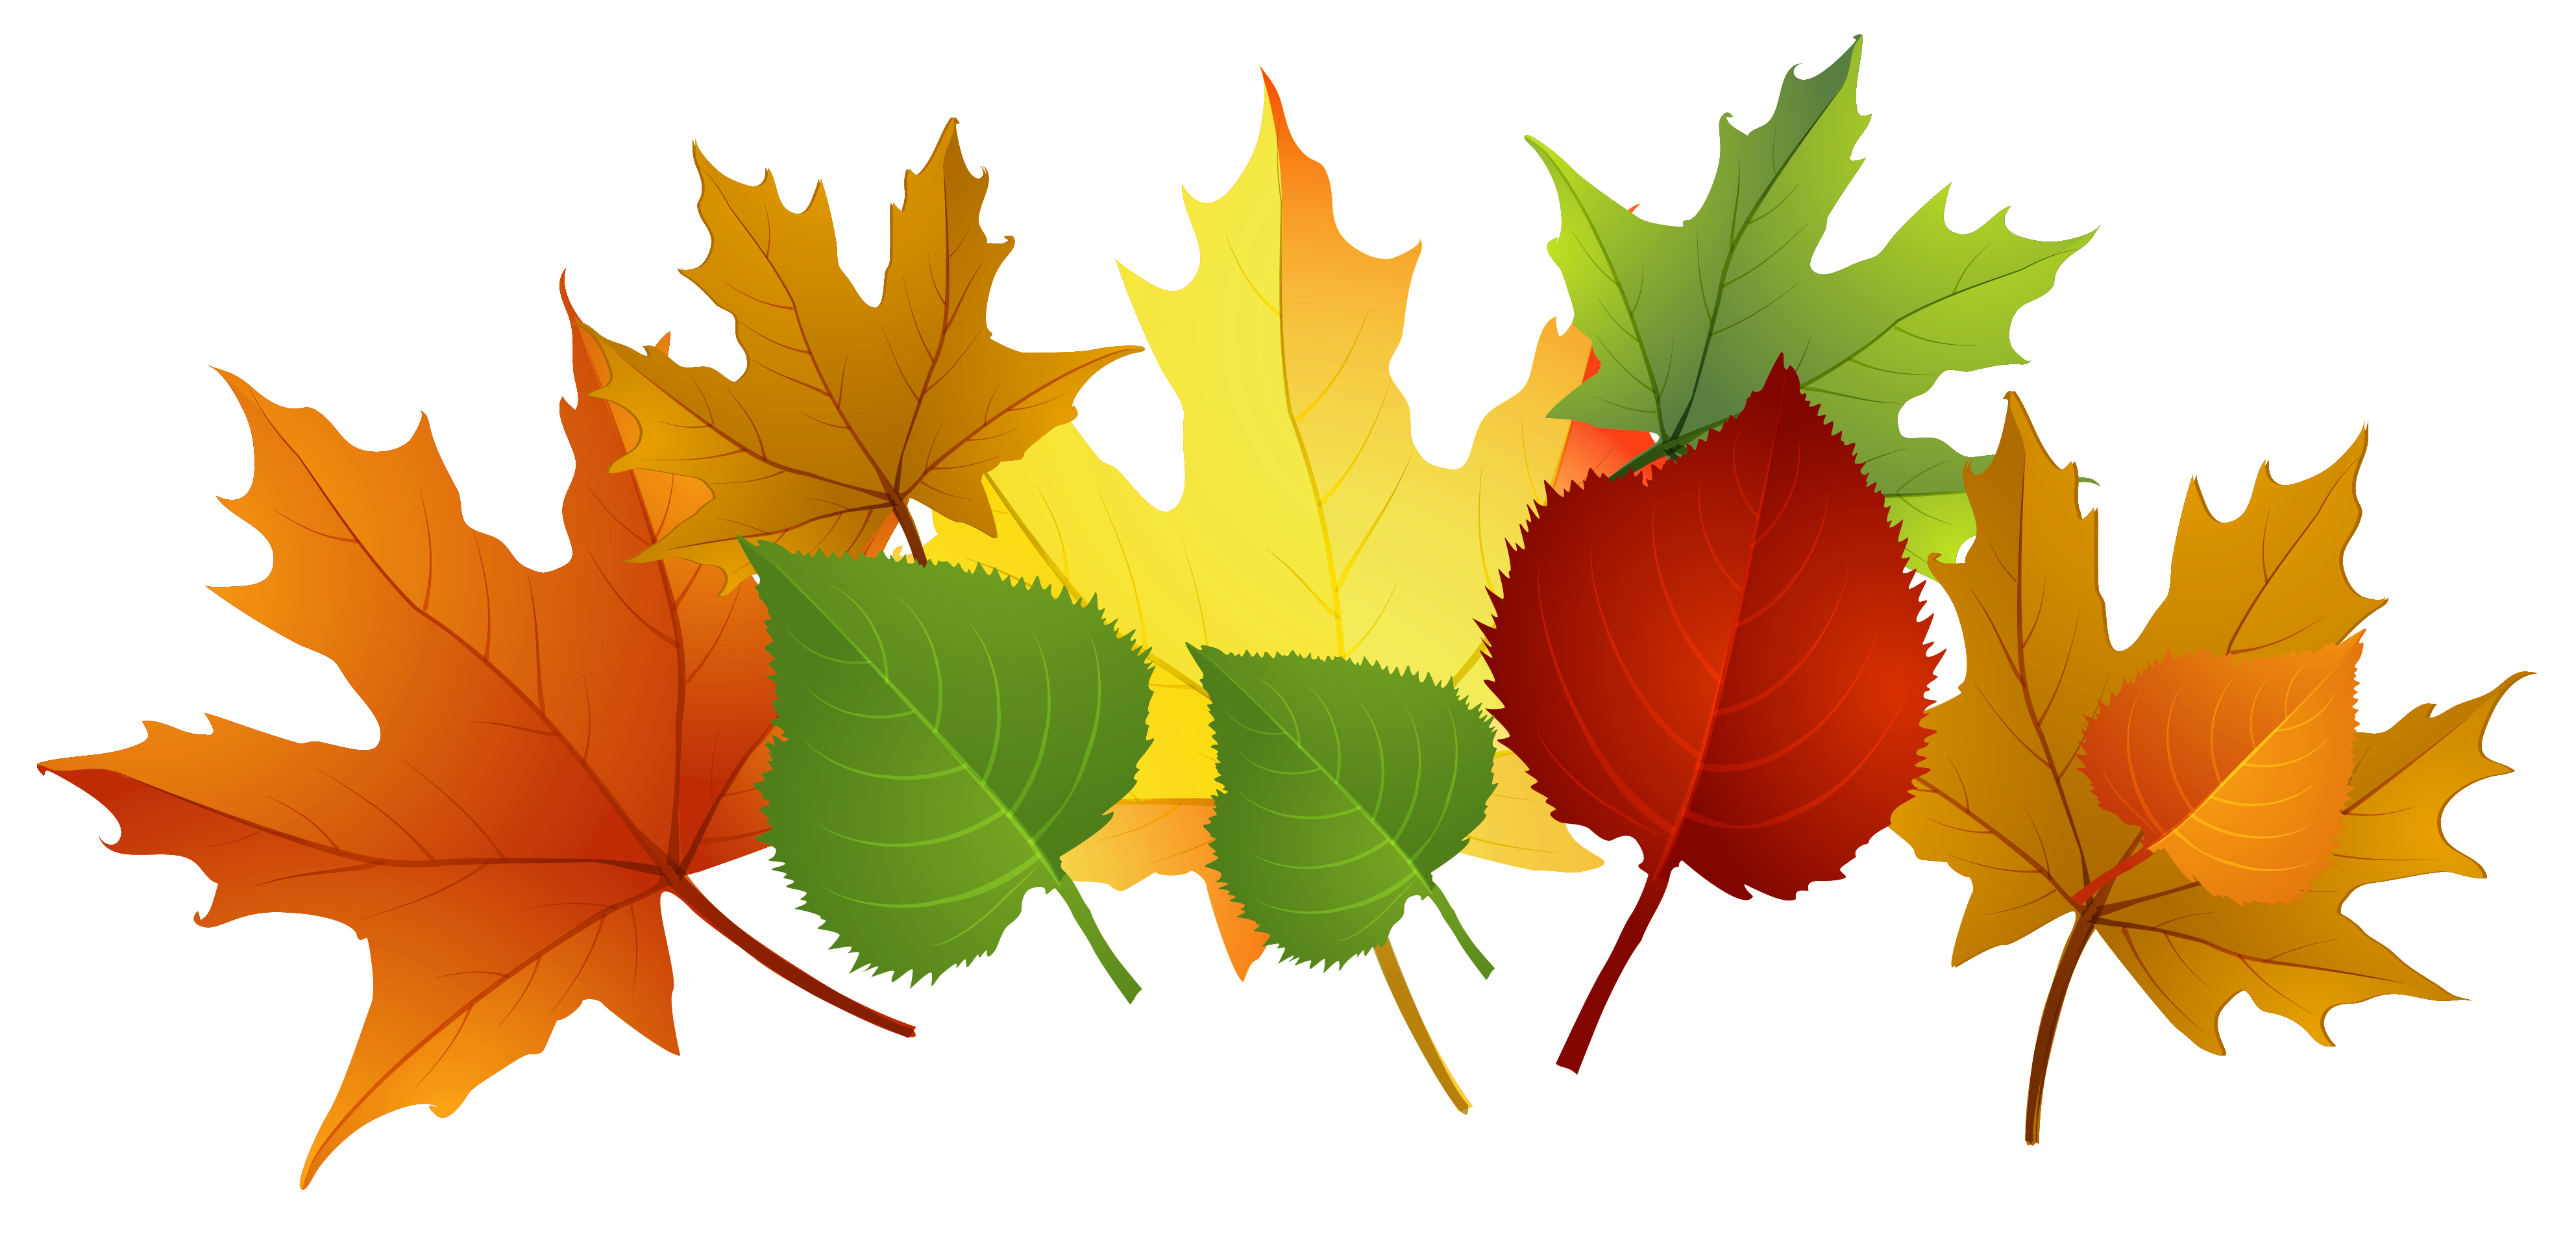 free autumn clipart images - photo #7